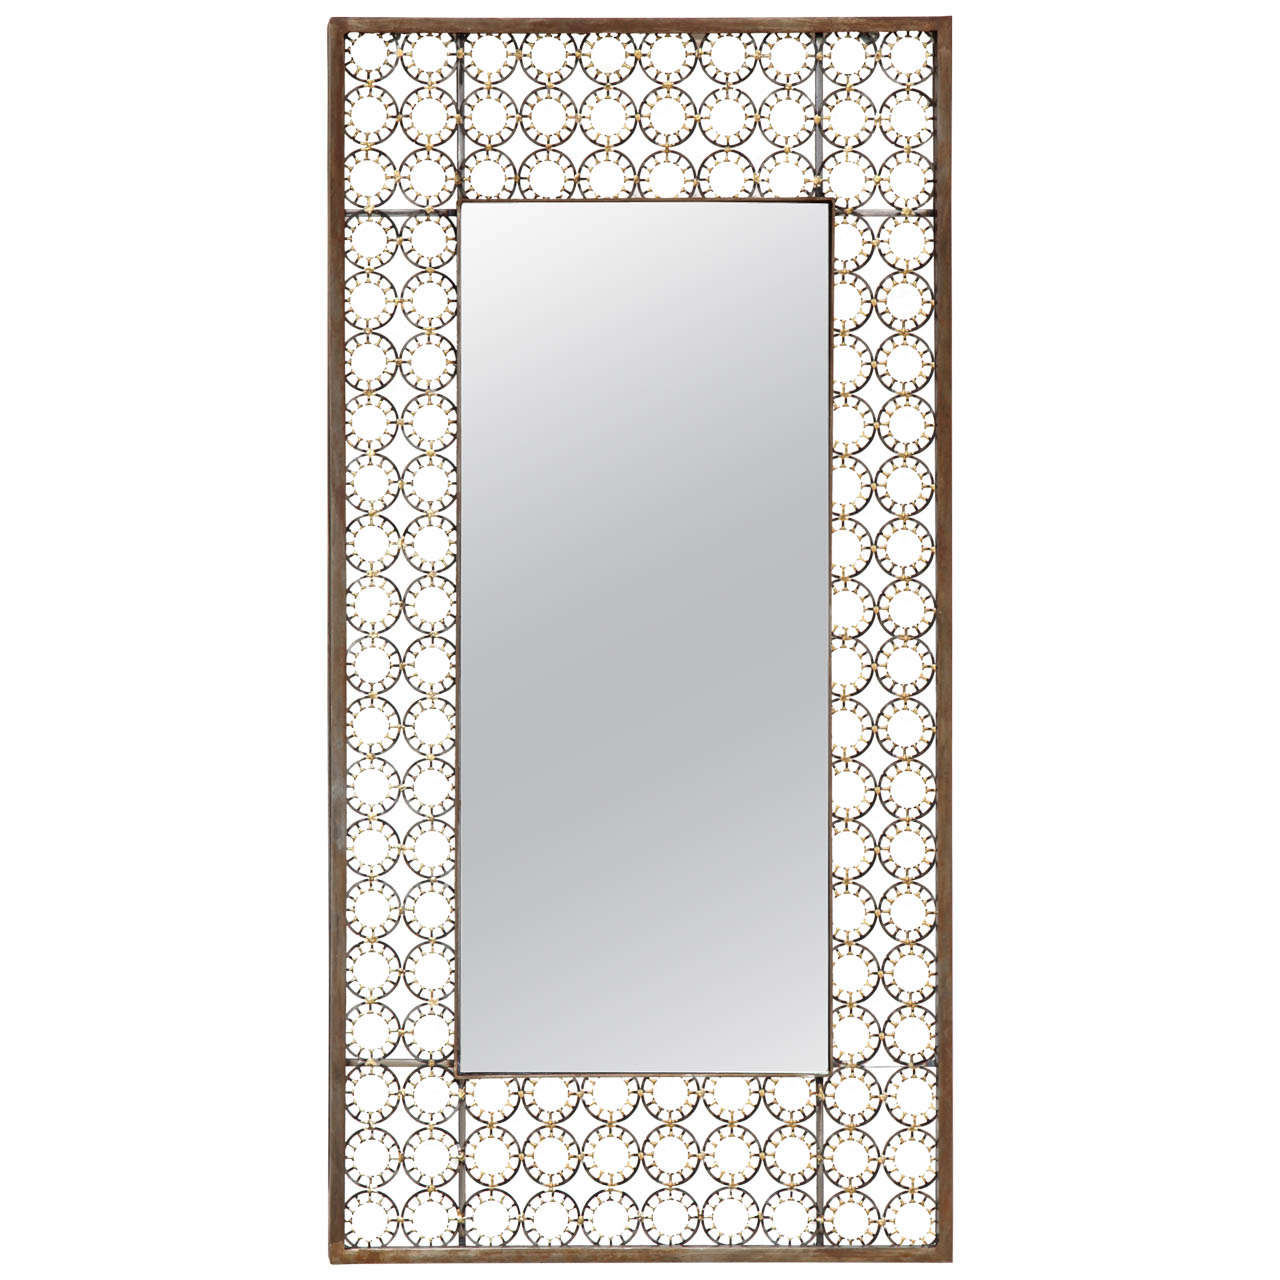 Marie suri iron and bronze narrow ovation mirror for sale for Narrow mirror